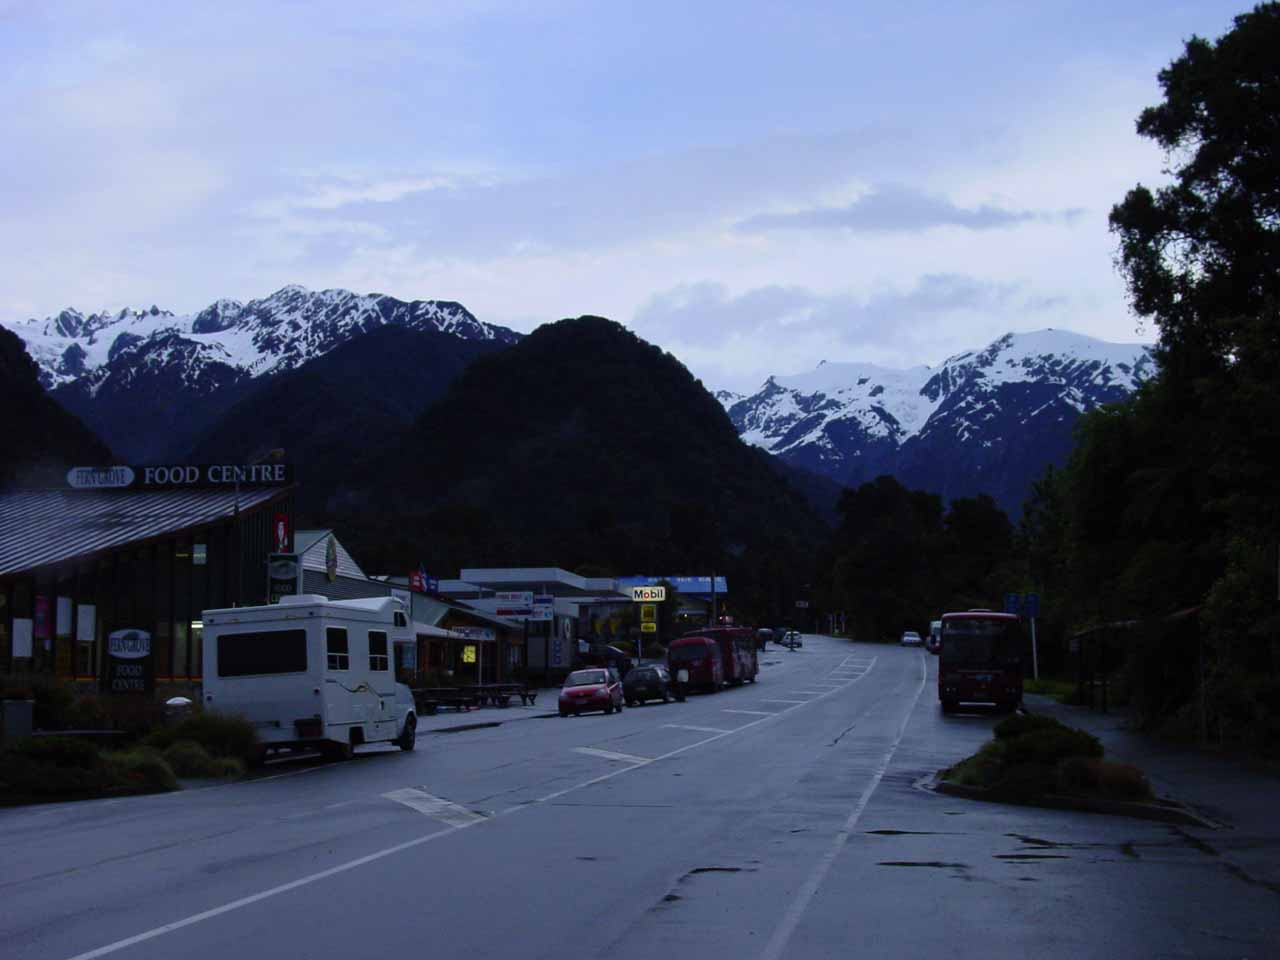 In the Franz Josef Village with the mountain tops finally starting to become visible